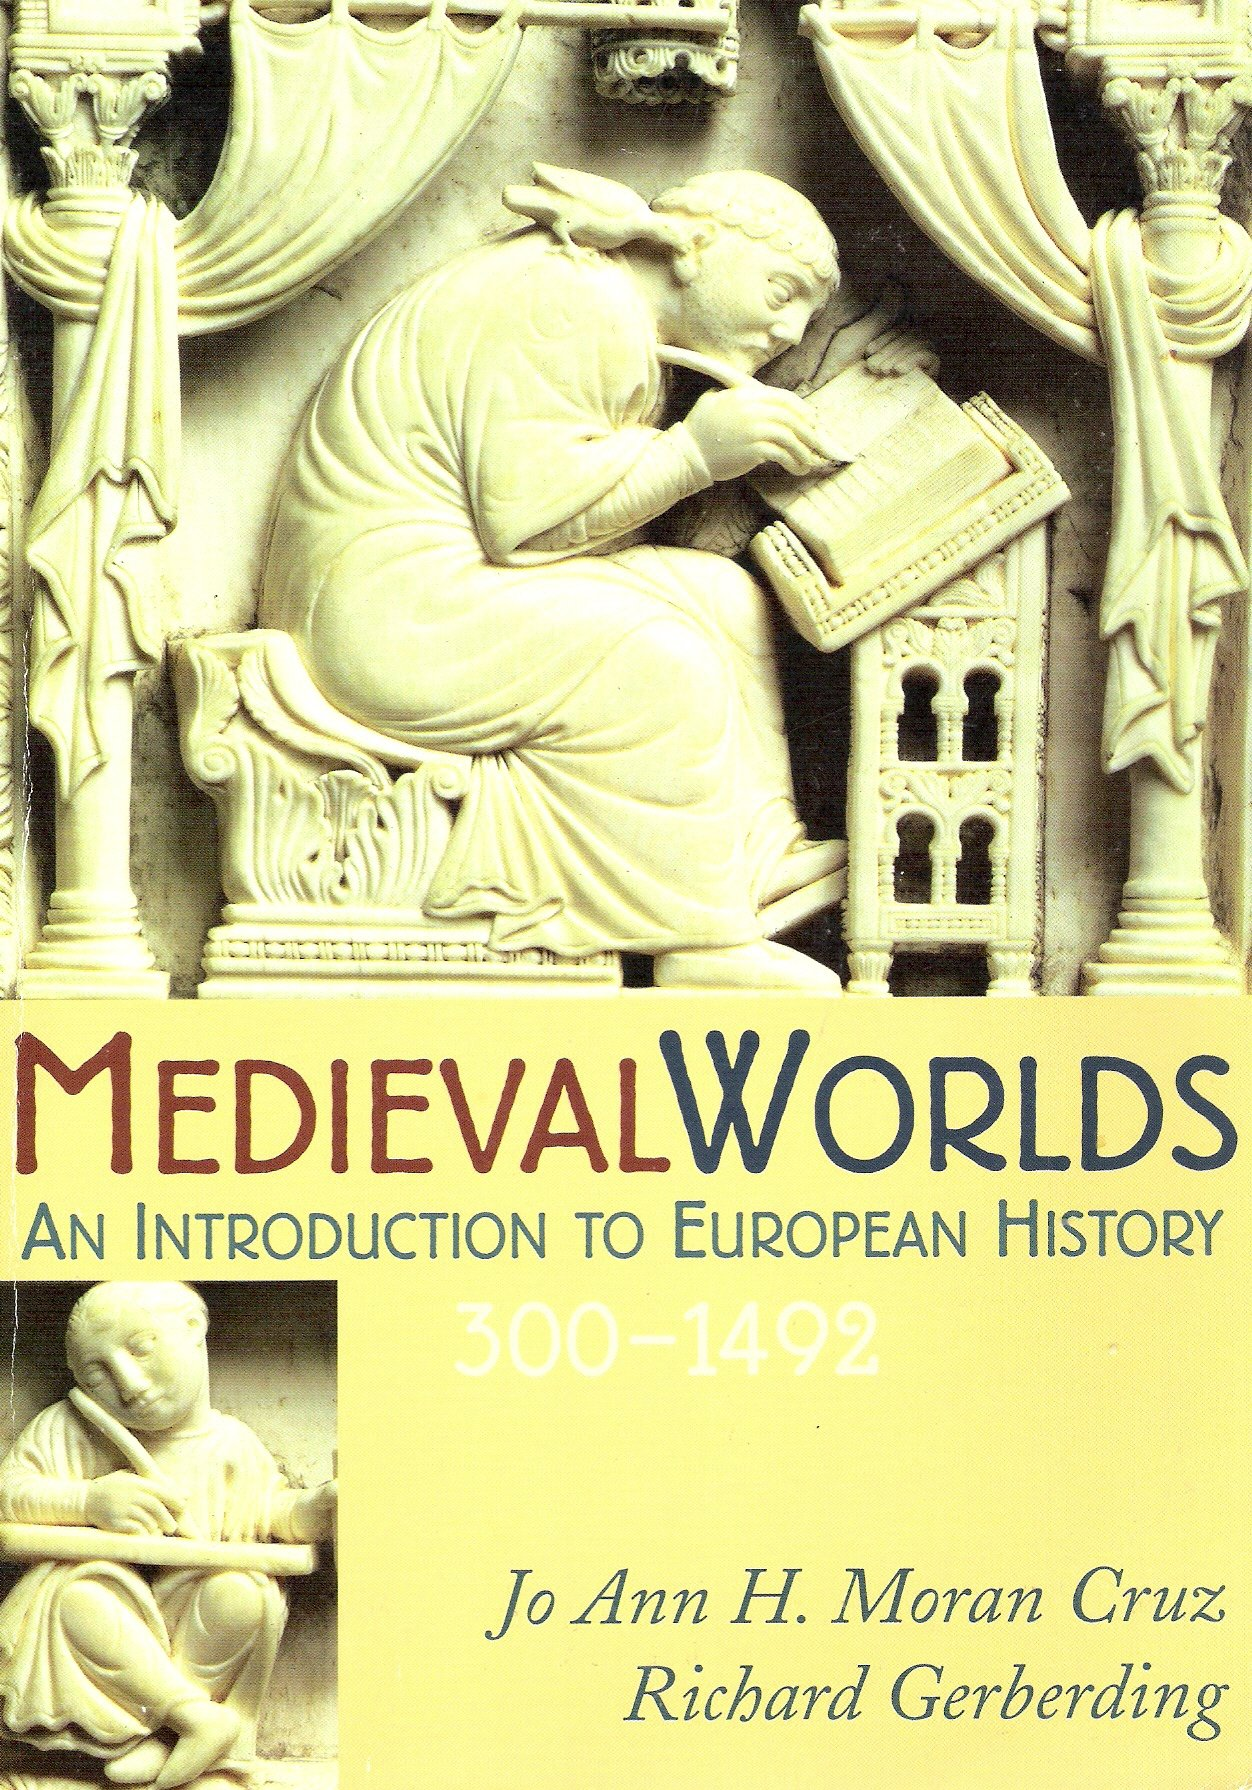 Medieval Worlds: An Introduction to European History 300-1492 pdf